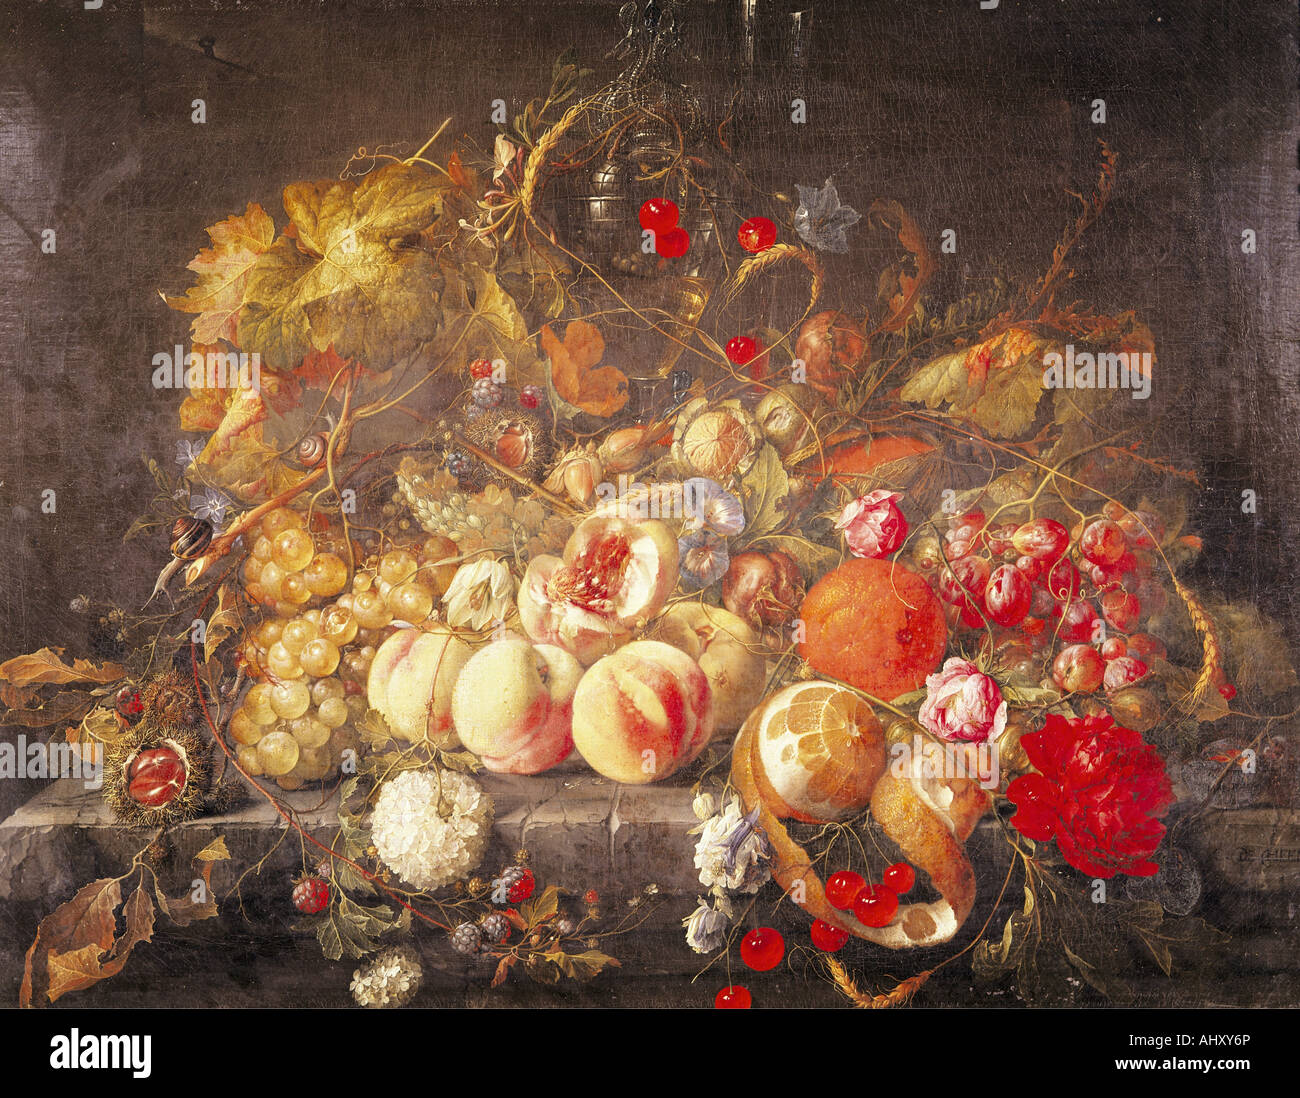 """fine arts, Heem, Jan Davidsz de, (1606 - 1684), painting, ""still life"", oil on panel, 55,8 cm x 73,5 cm, museum Stock Photo"